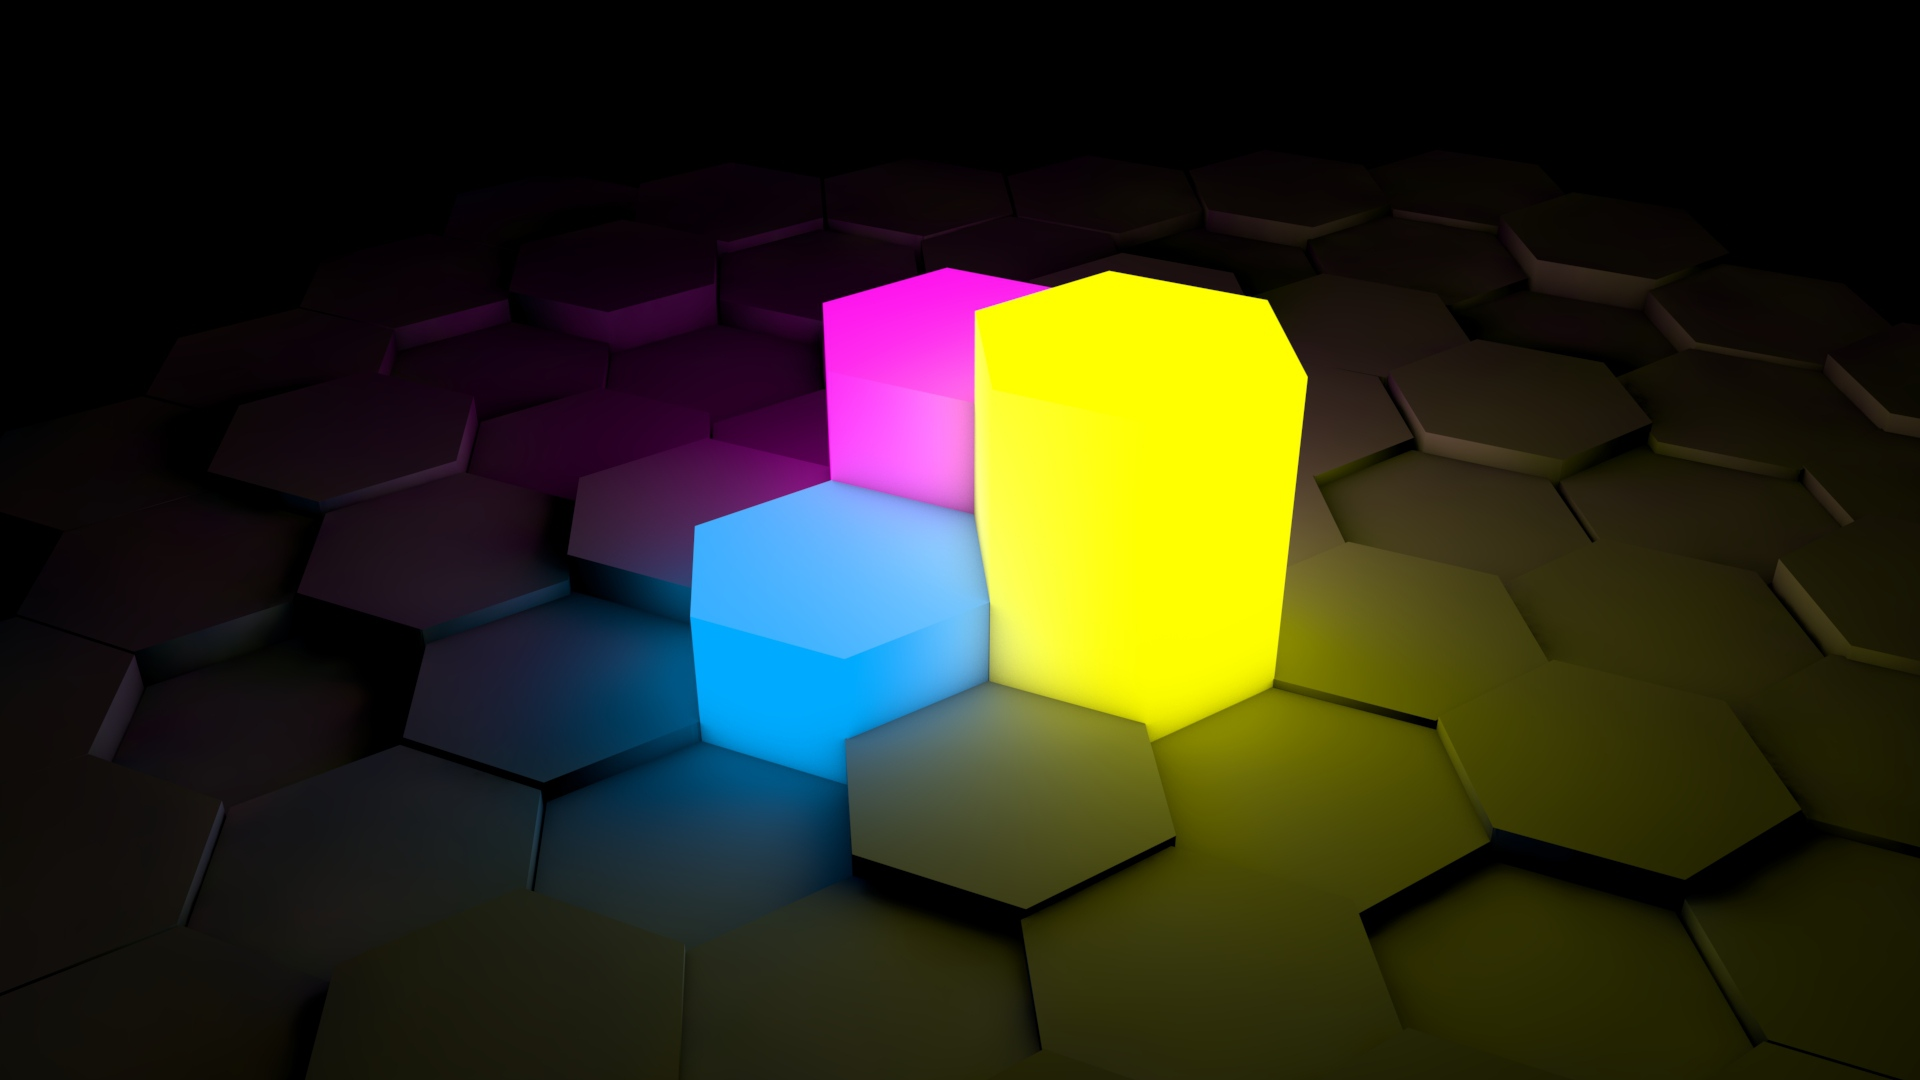 3d Dice Desktop Wallpaper Abstract Neon Wallpapers Hd Pixelstalk Net